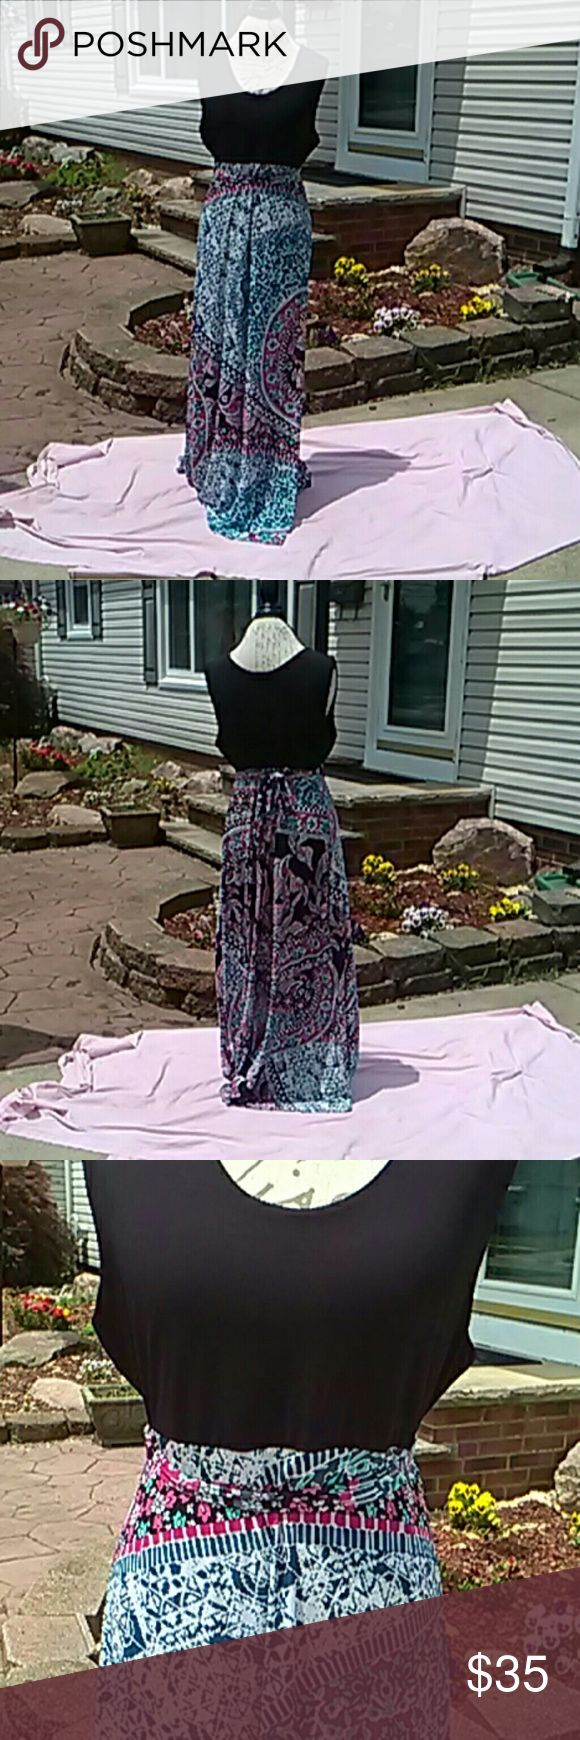 Flirty Pink brand maxi dress💕💕💕💕💕 Beautiful maxi with a black top and Paisley printed skirt that flows flawlessly colors of teal, fuscia,pink,slate blue,royal blue,and purple!! A must have in your closet can be worn for summer weddings,or BBQS,Picnics wherever you go you are sure to turn heads also belts around the waist for a nice cinch! 62 inches from shoulder to hem it's never been worn I'm too short for it😢💞💞💞💞💞💞💞💞💞💞💞💞💞💞🤗🤗🤗🤗🤗🤗🤗🤗 size 2x but can be worn by 3x…